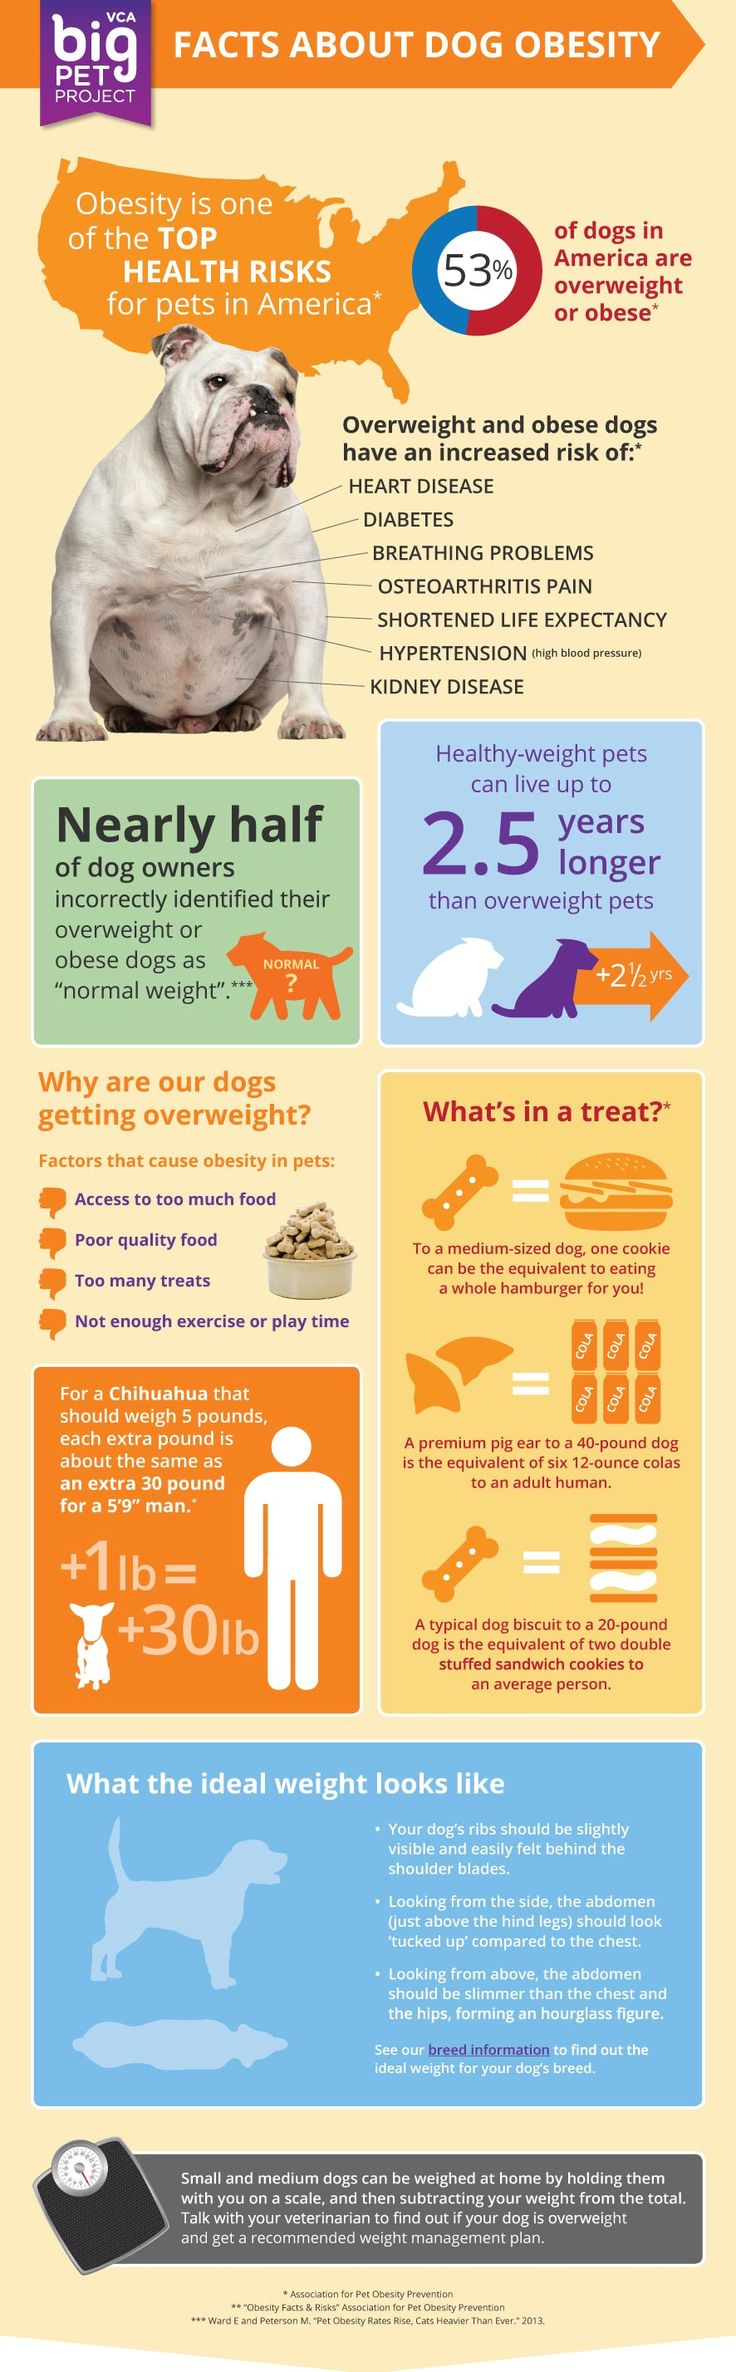 pet obesity The number of obese pets has increased every year for the past 6 years, and this trend shows no signs of abating.